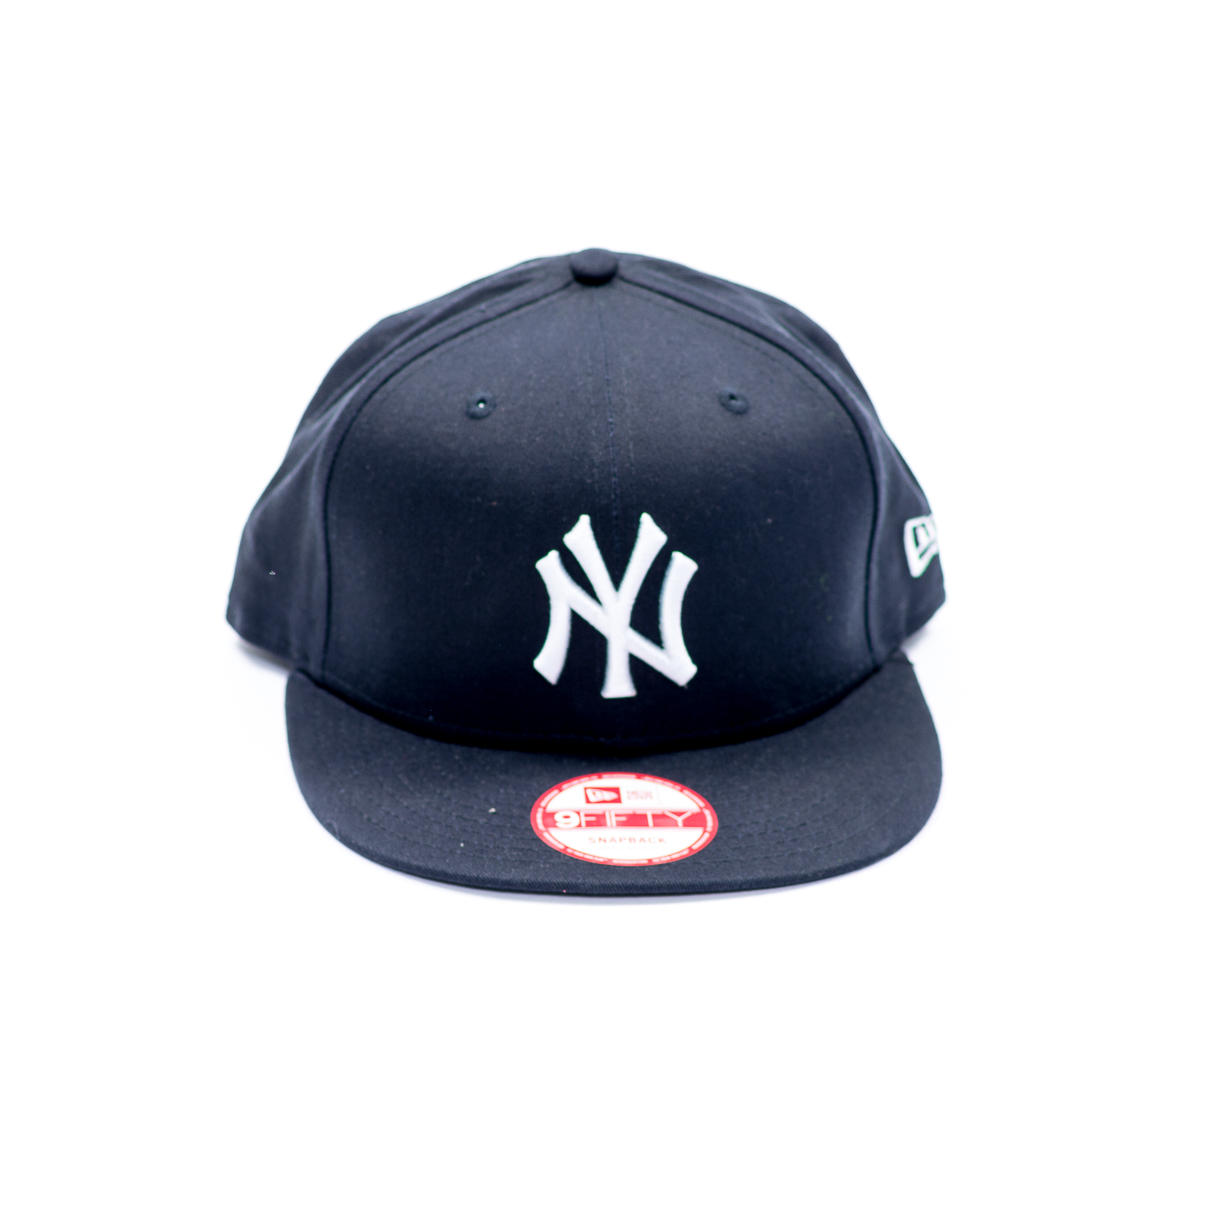 CAPPELLO NEW ERA NERO NY